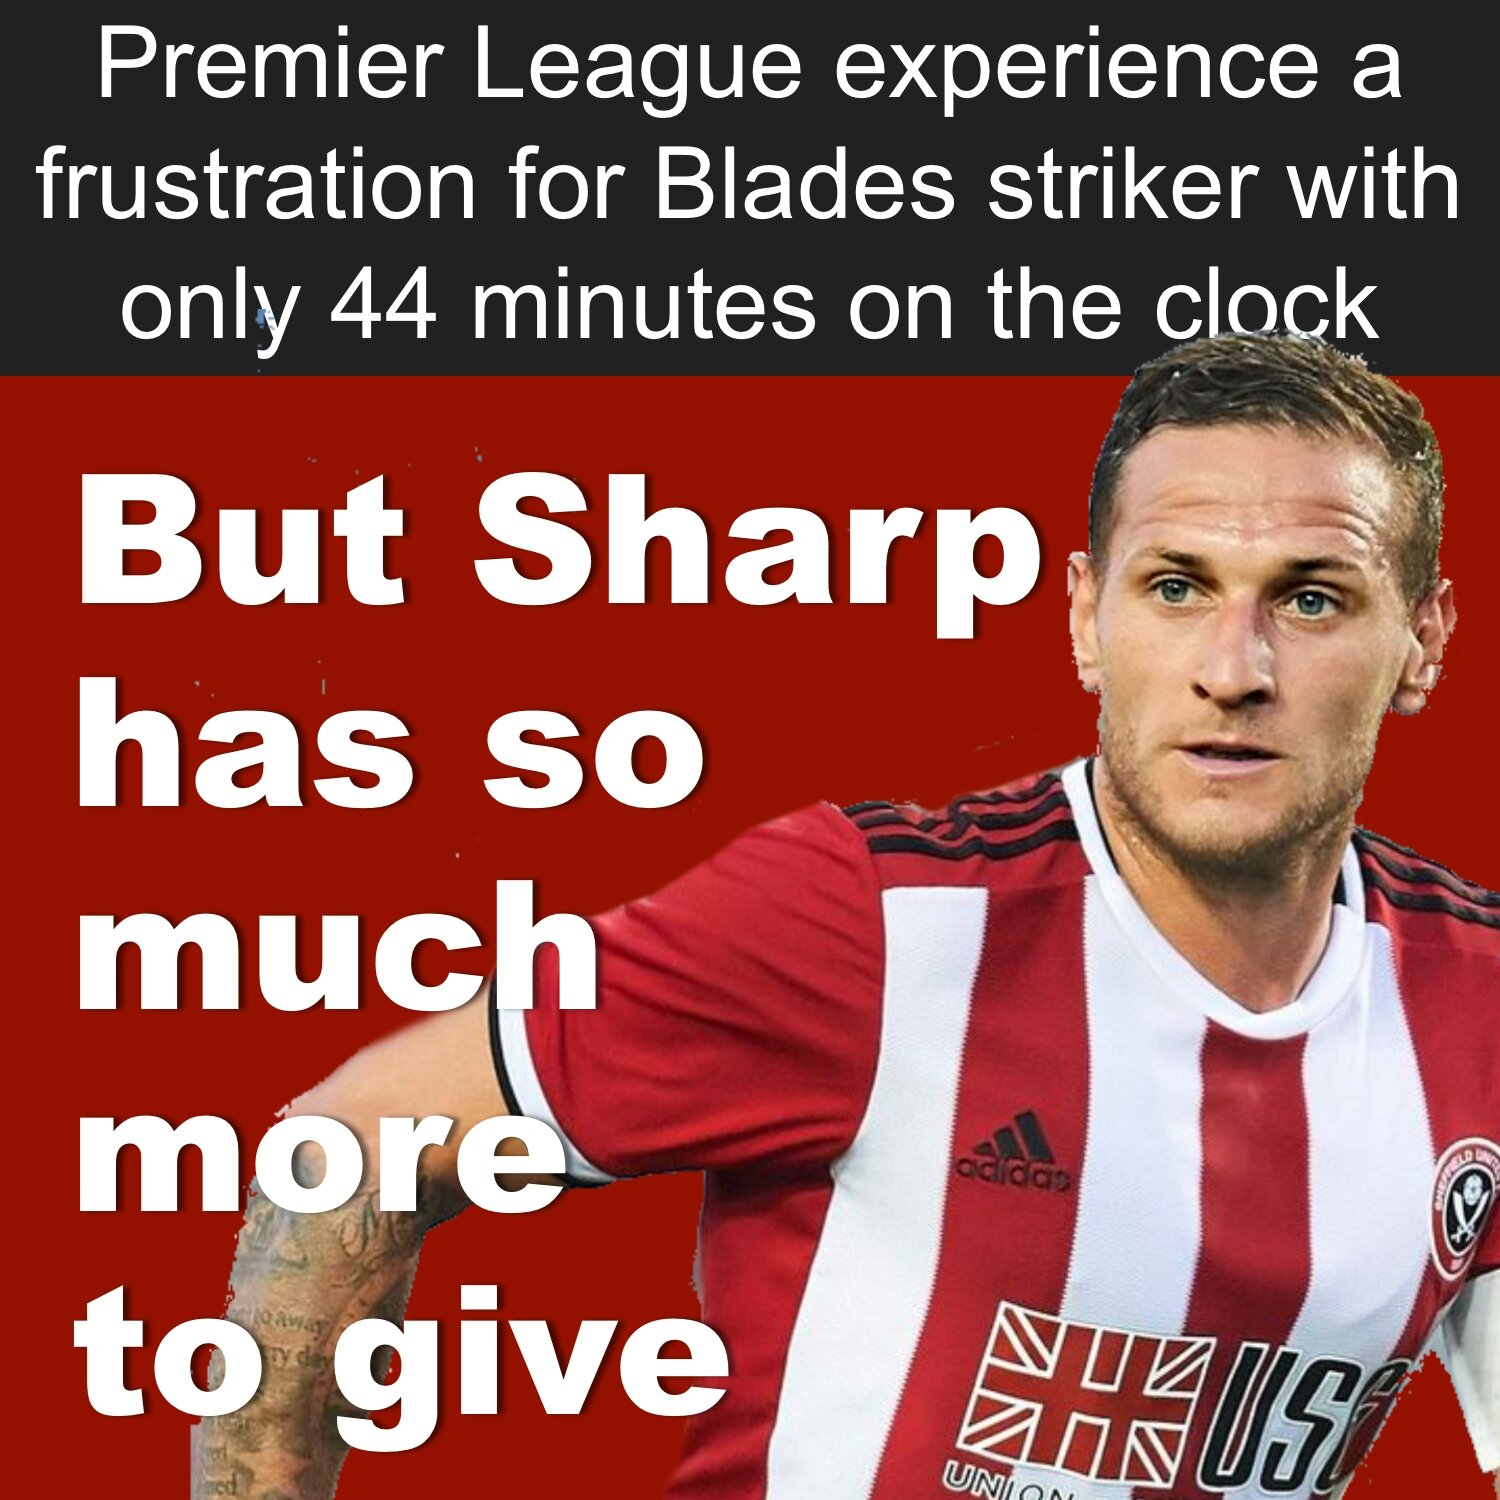 Billy Sharp's top flight frustration with Blades as strikers jostle for position